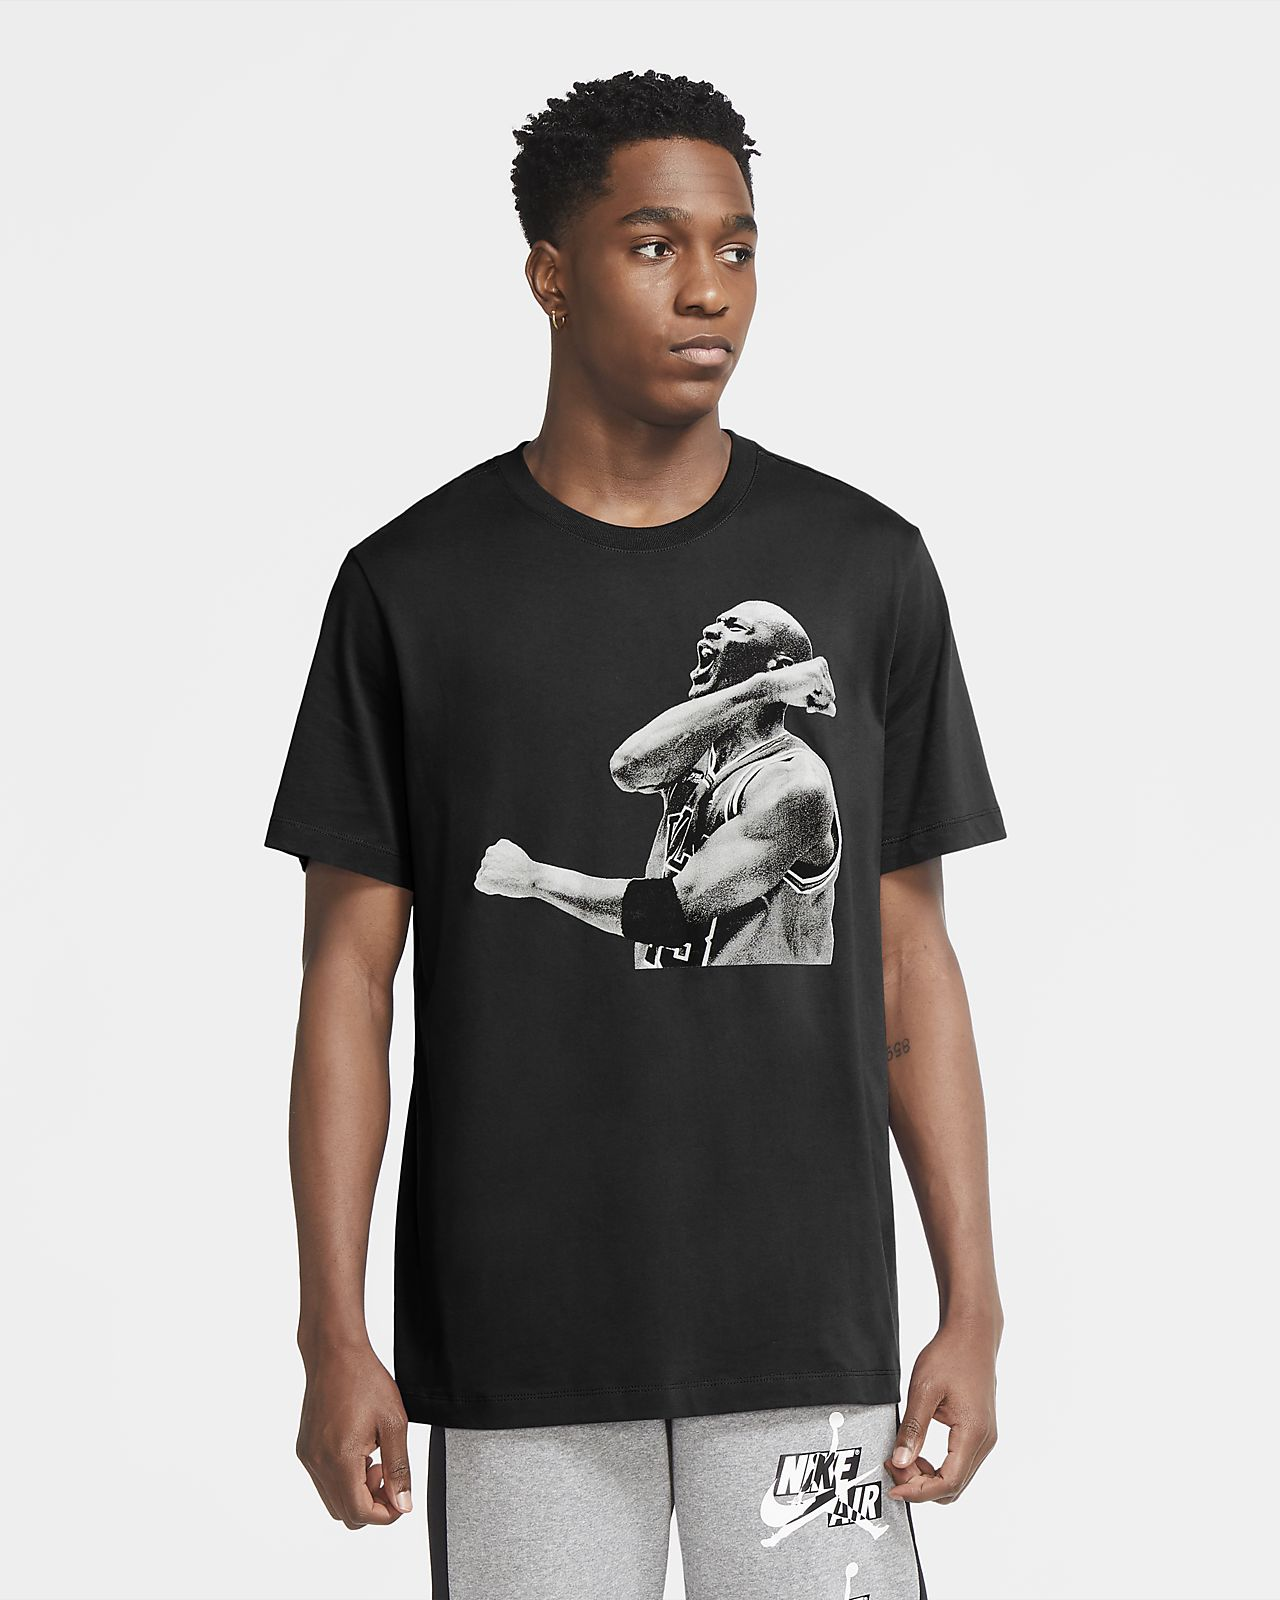 Jordan Photo Men's Short-Sleeve Crew